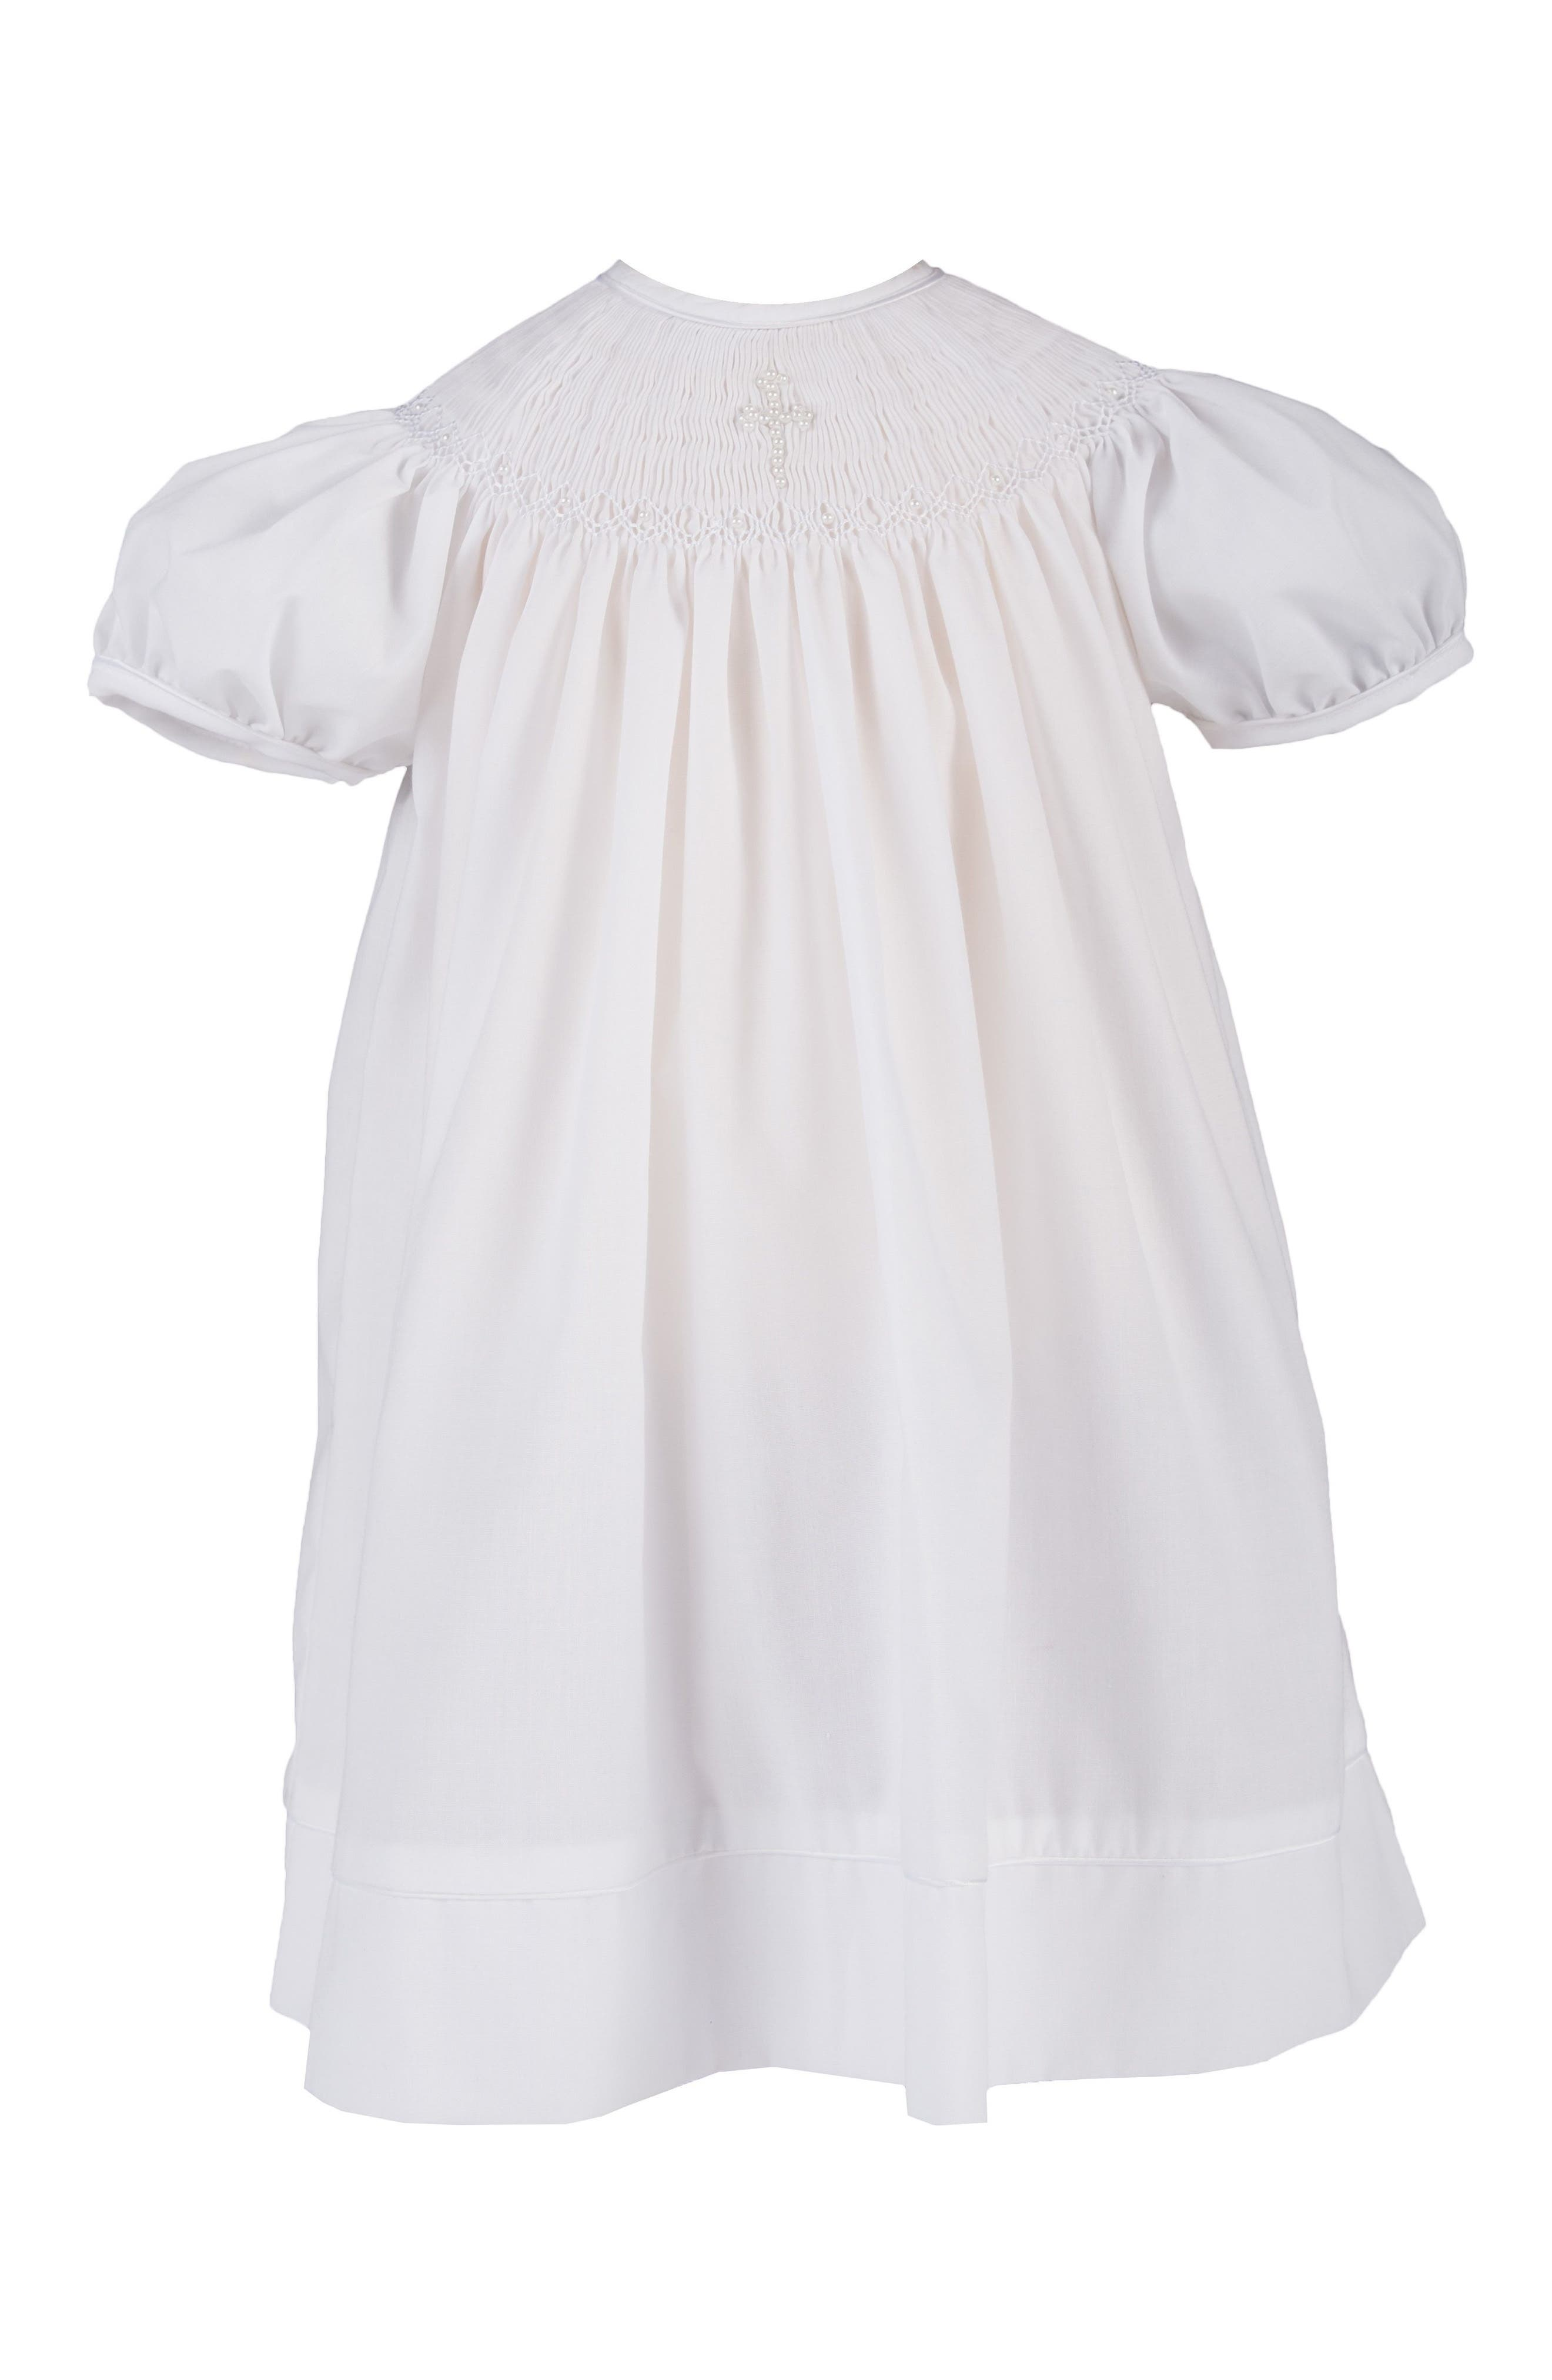 Alternate Image 1 Selected - Carriage Boutique Christening Gown & Bonnet Set (Baby Girls)